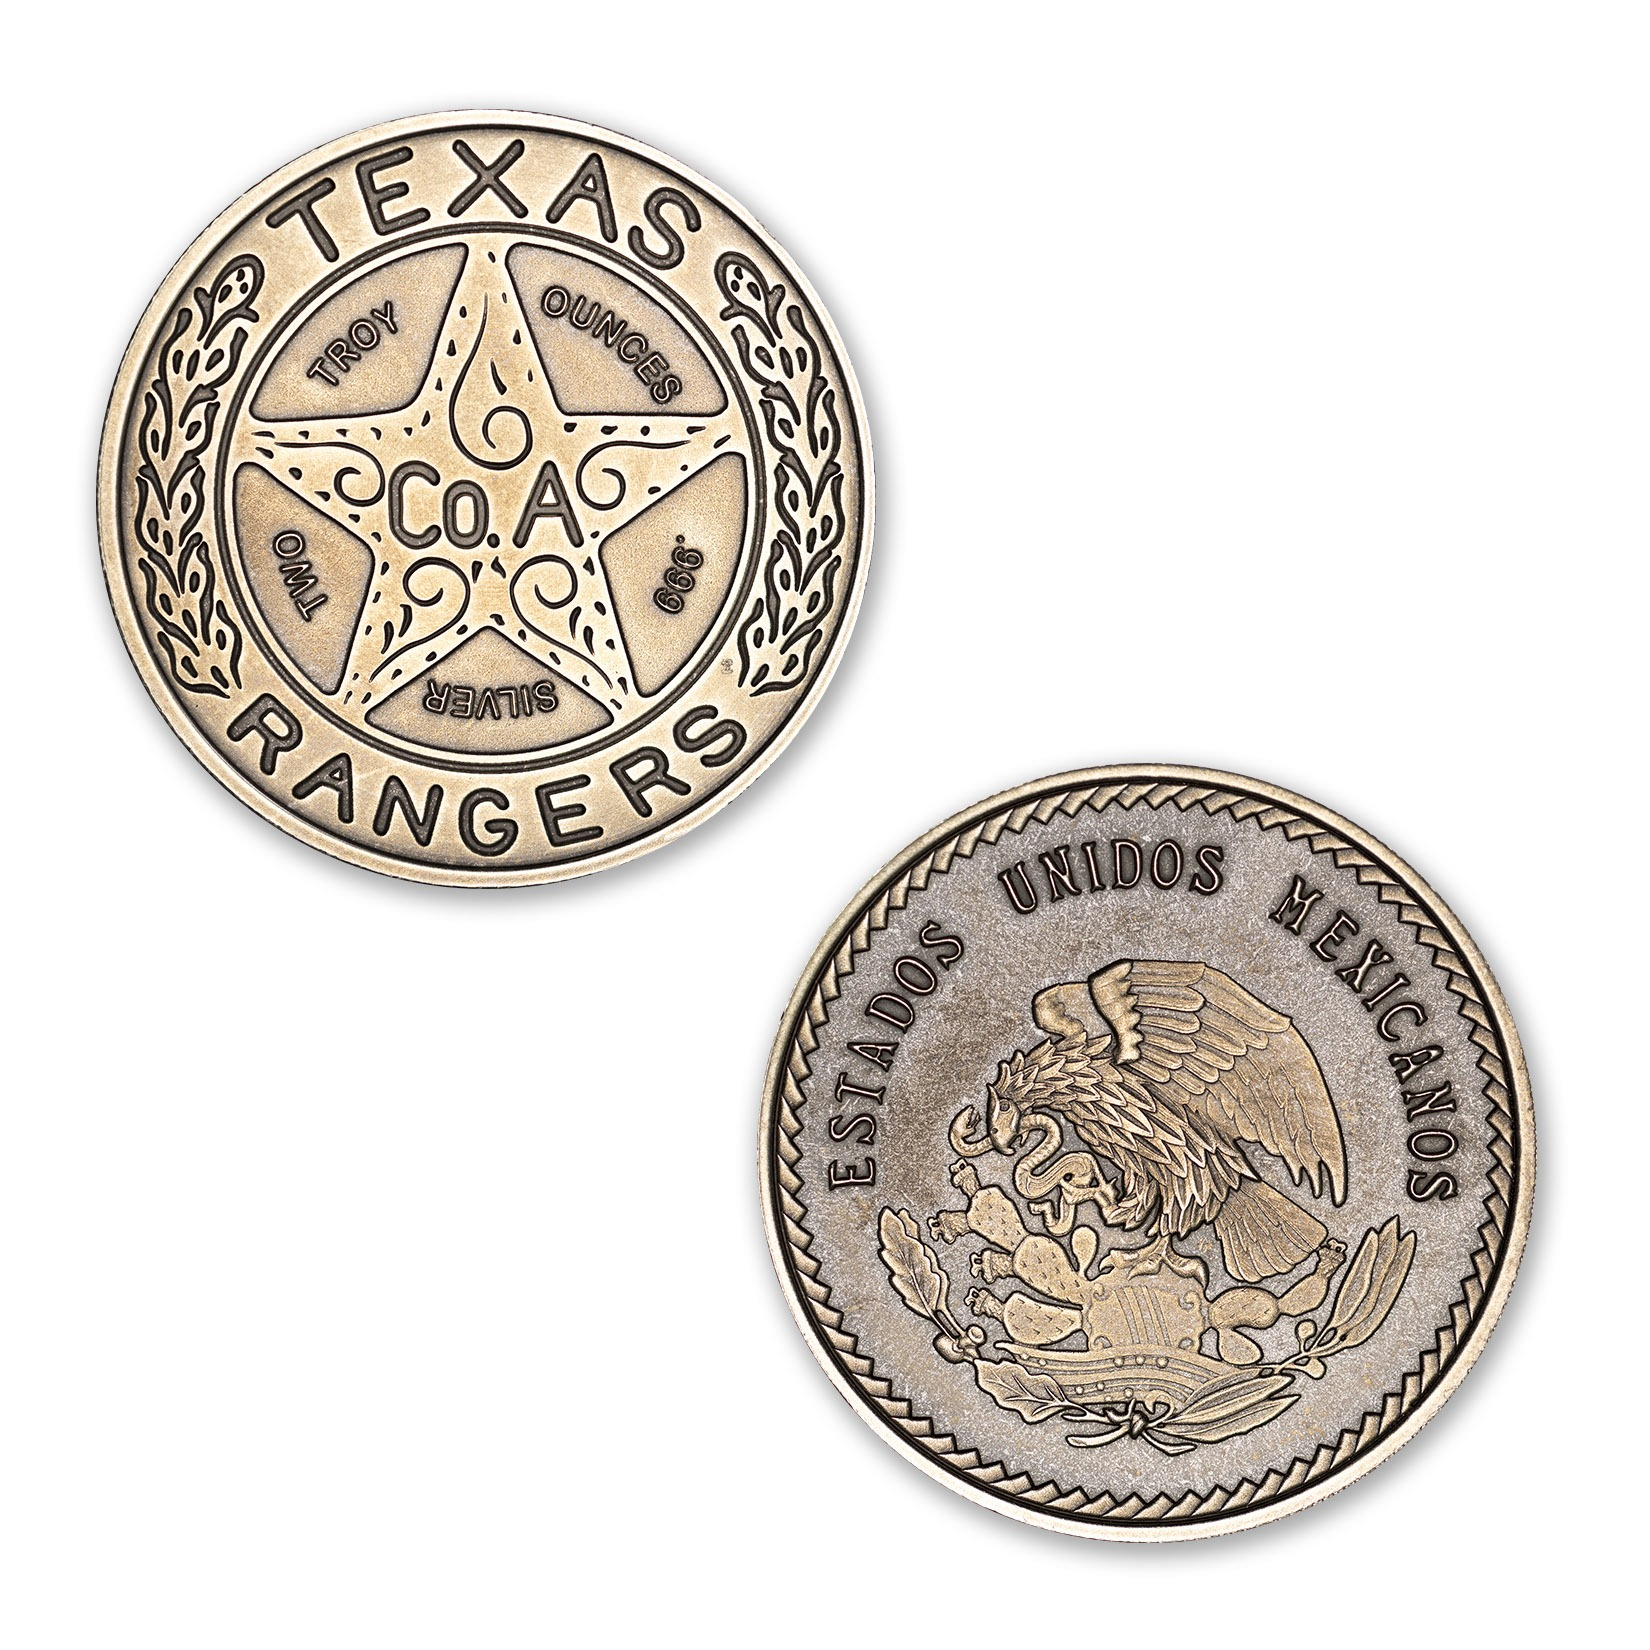 TEXAS RANGER BADGE – 2 TROY OUNCE – 39MM (ANTIQUED)